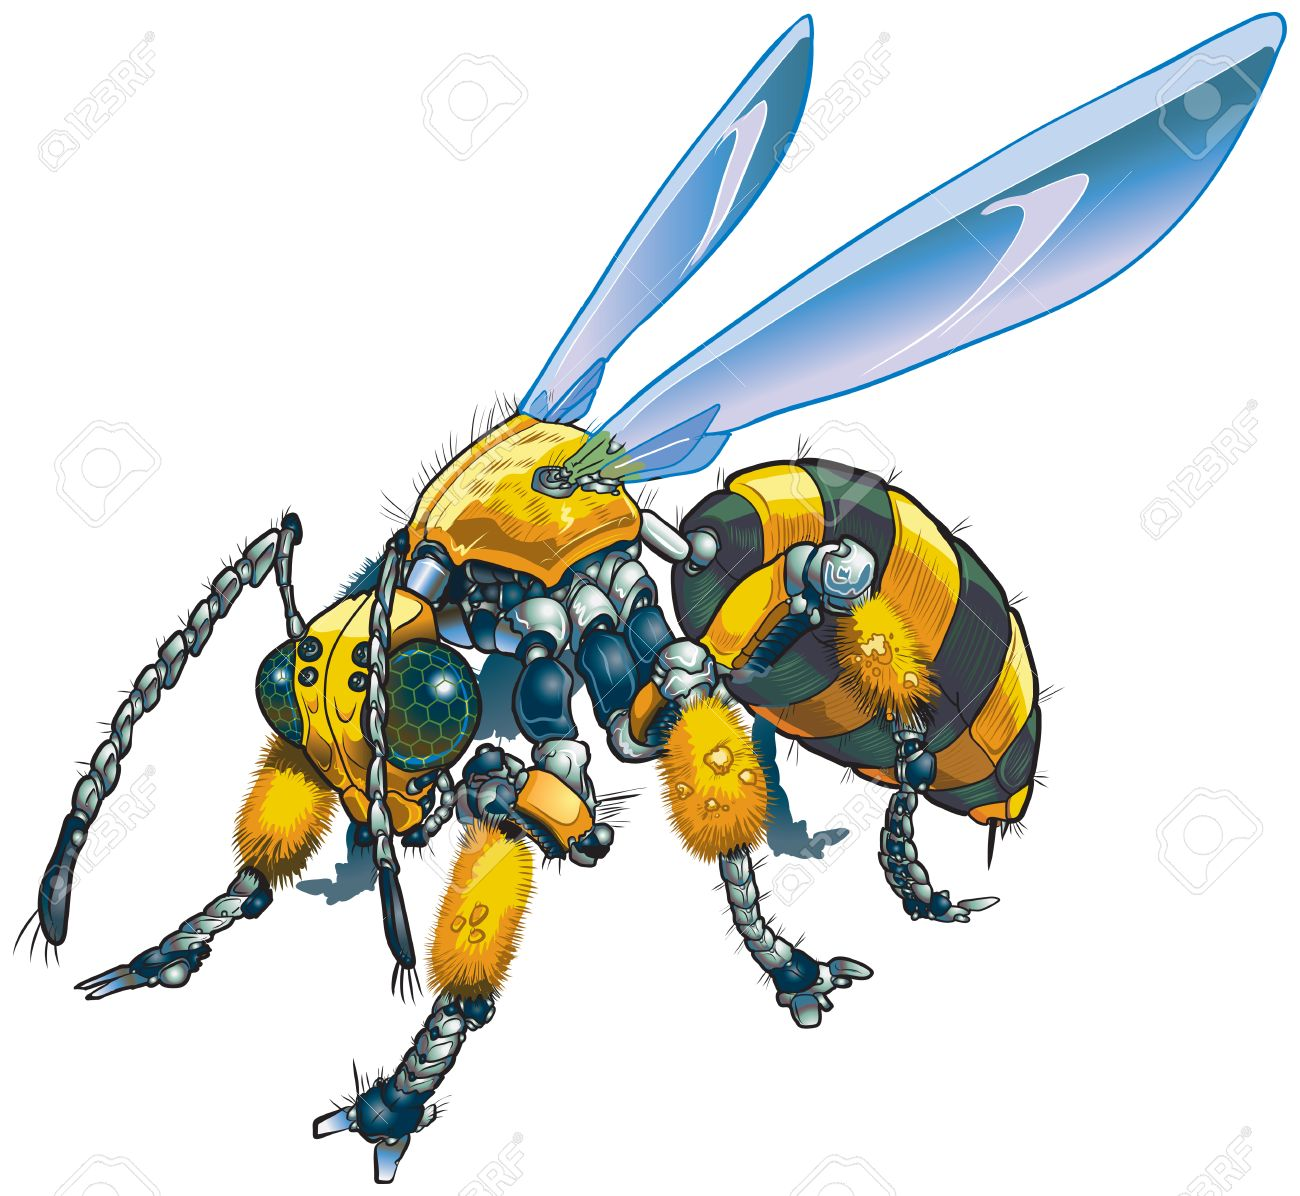 Vector cartoon clip art illustration of a robot wasp or bee. Could also be a conceptual illustration of future drone technology. Stock Vector - 26816943